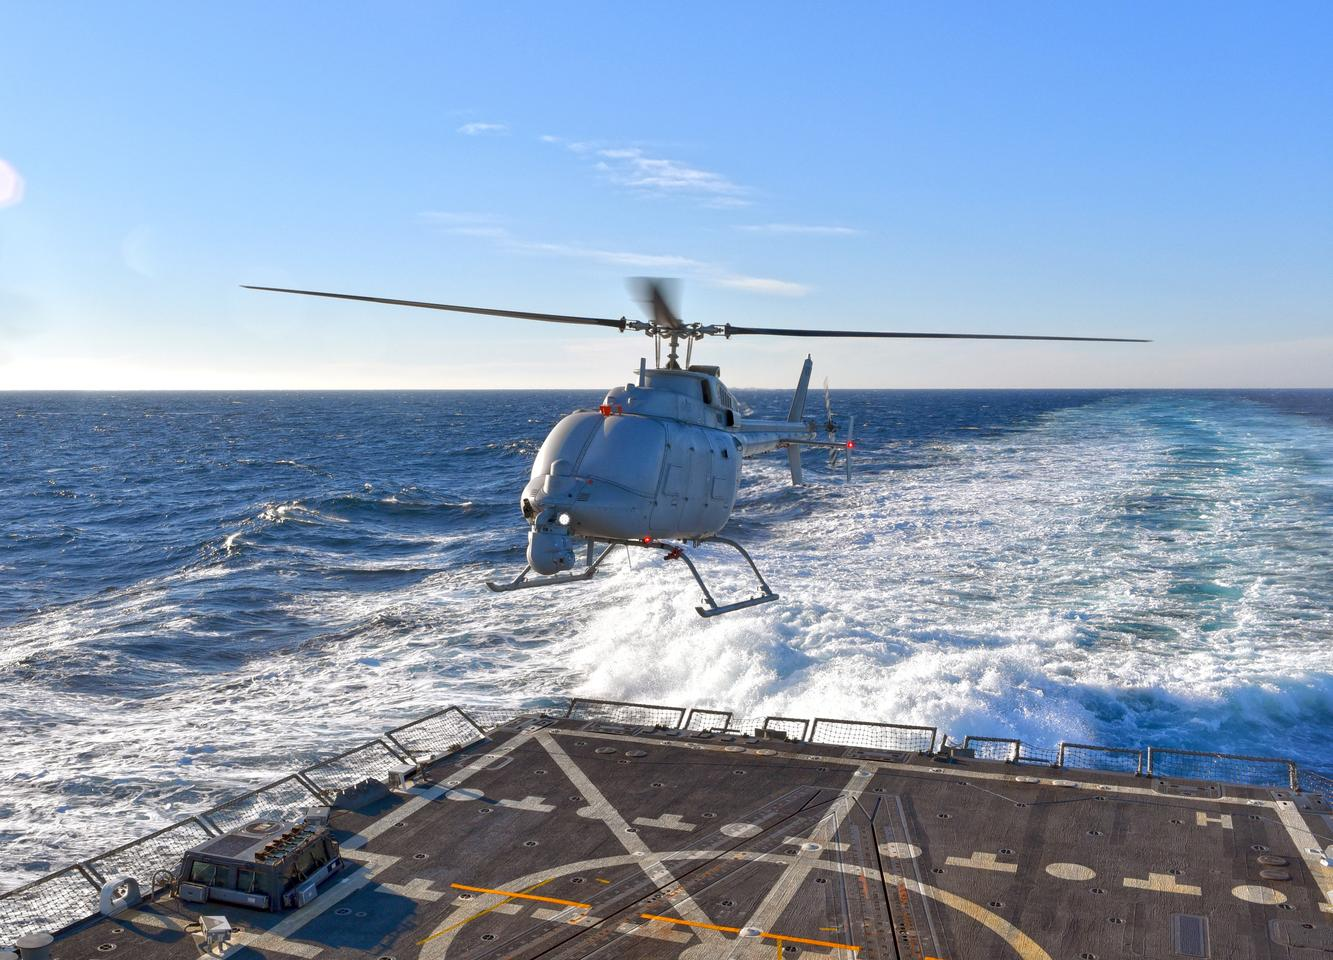 The MQ-8C Fire Scout hovering over the flight deck of USS Jason Dunham (Photo: Northrop Grumman)